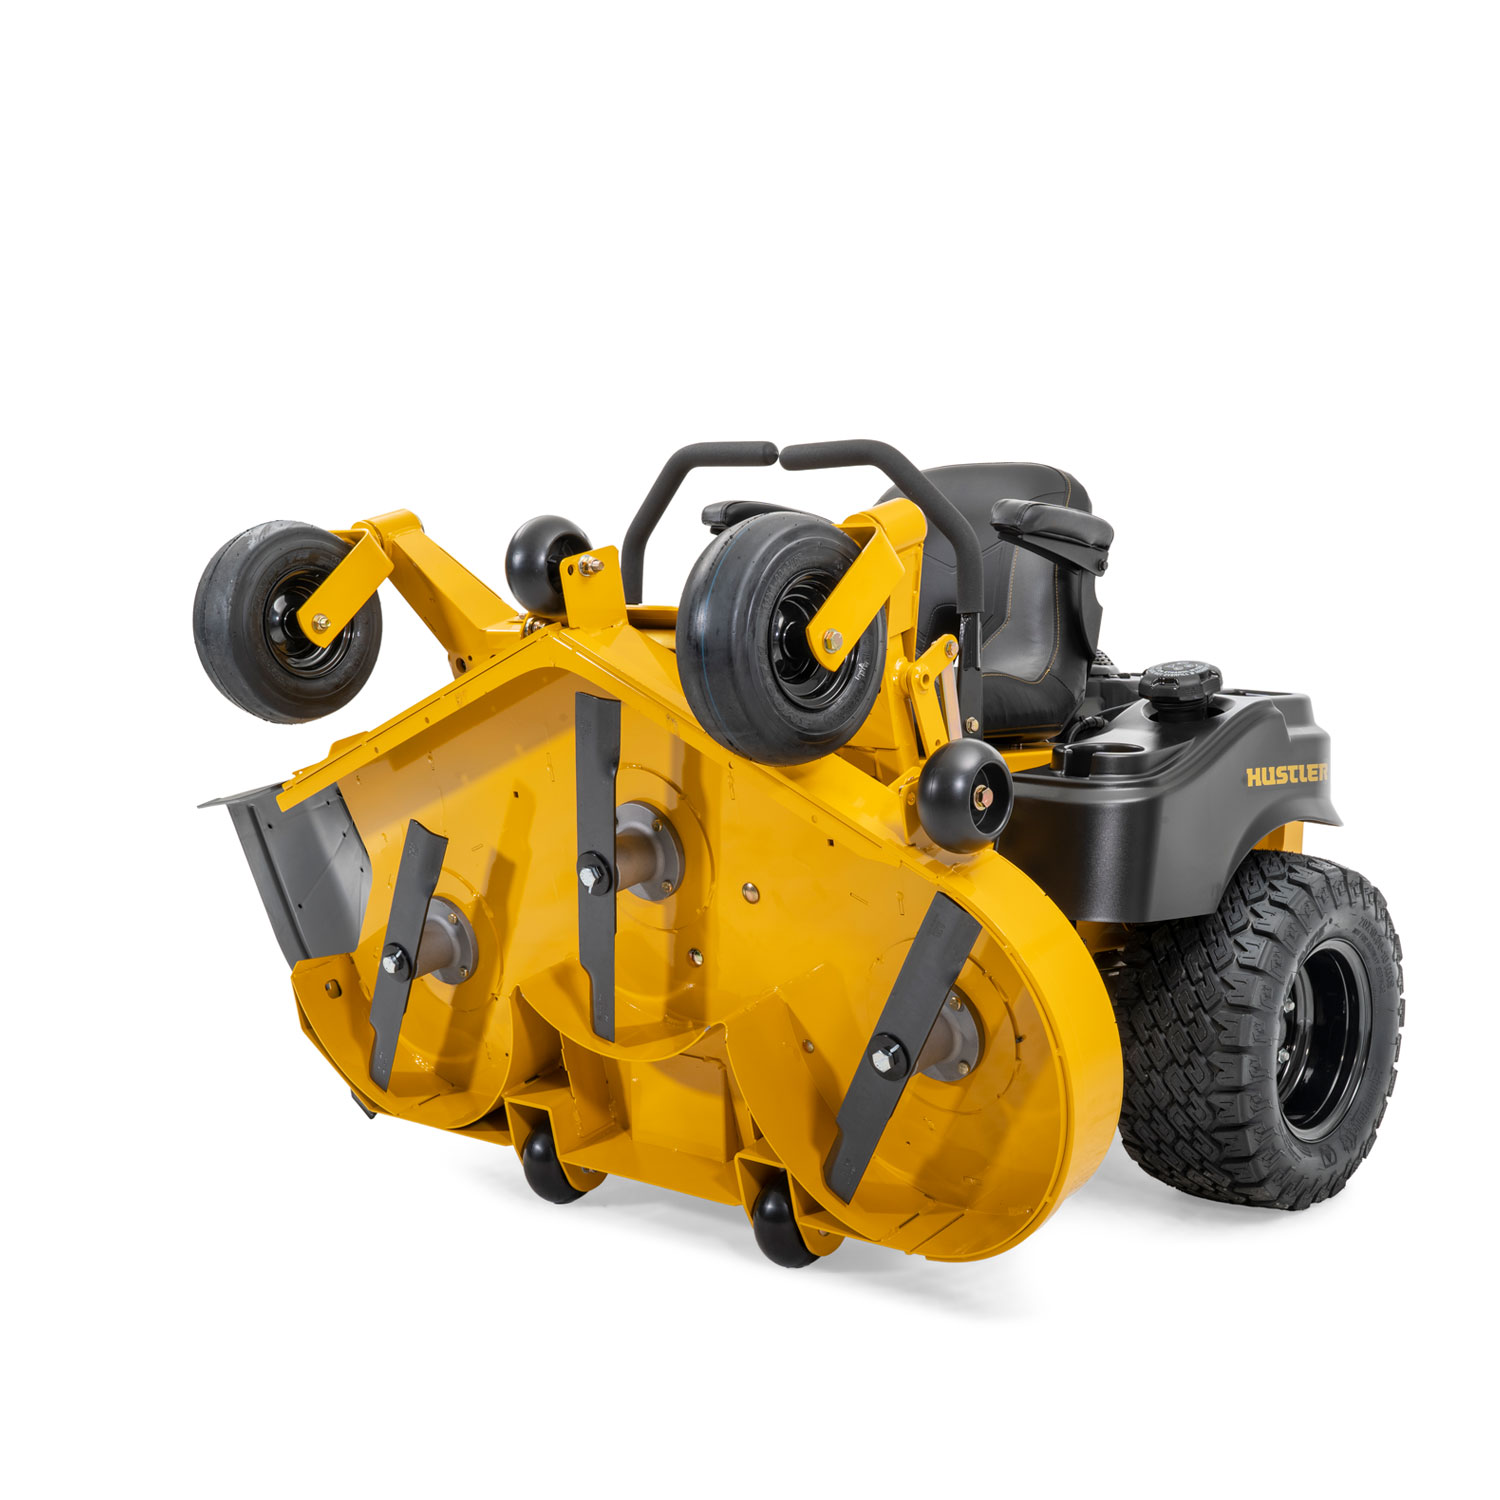 Image of the front of a yellow riding mower with the deck vertical and underside of the deck visible